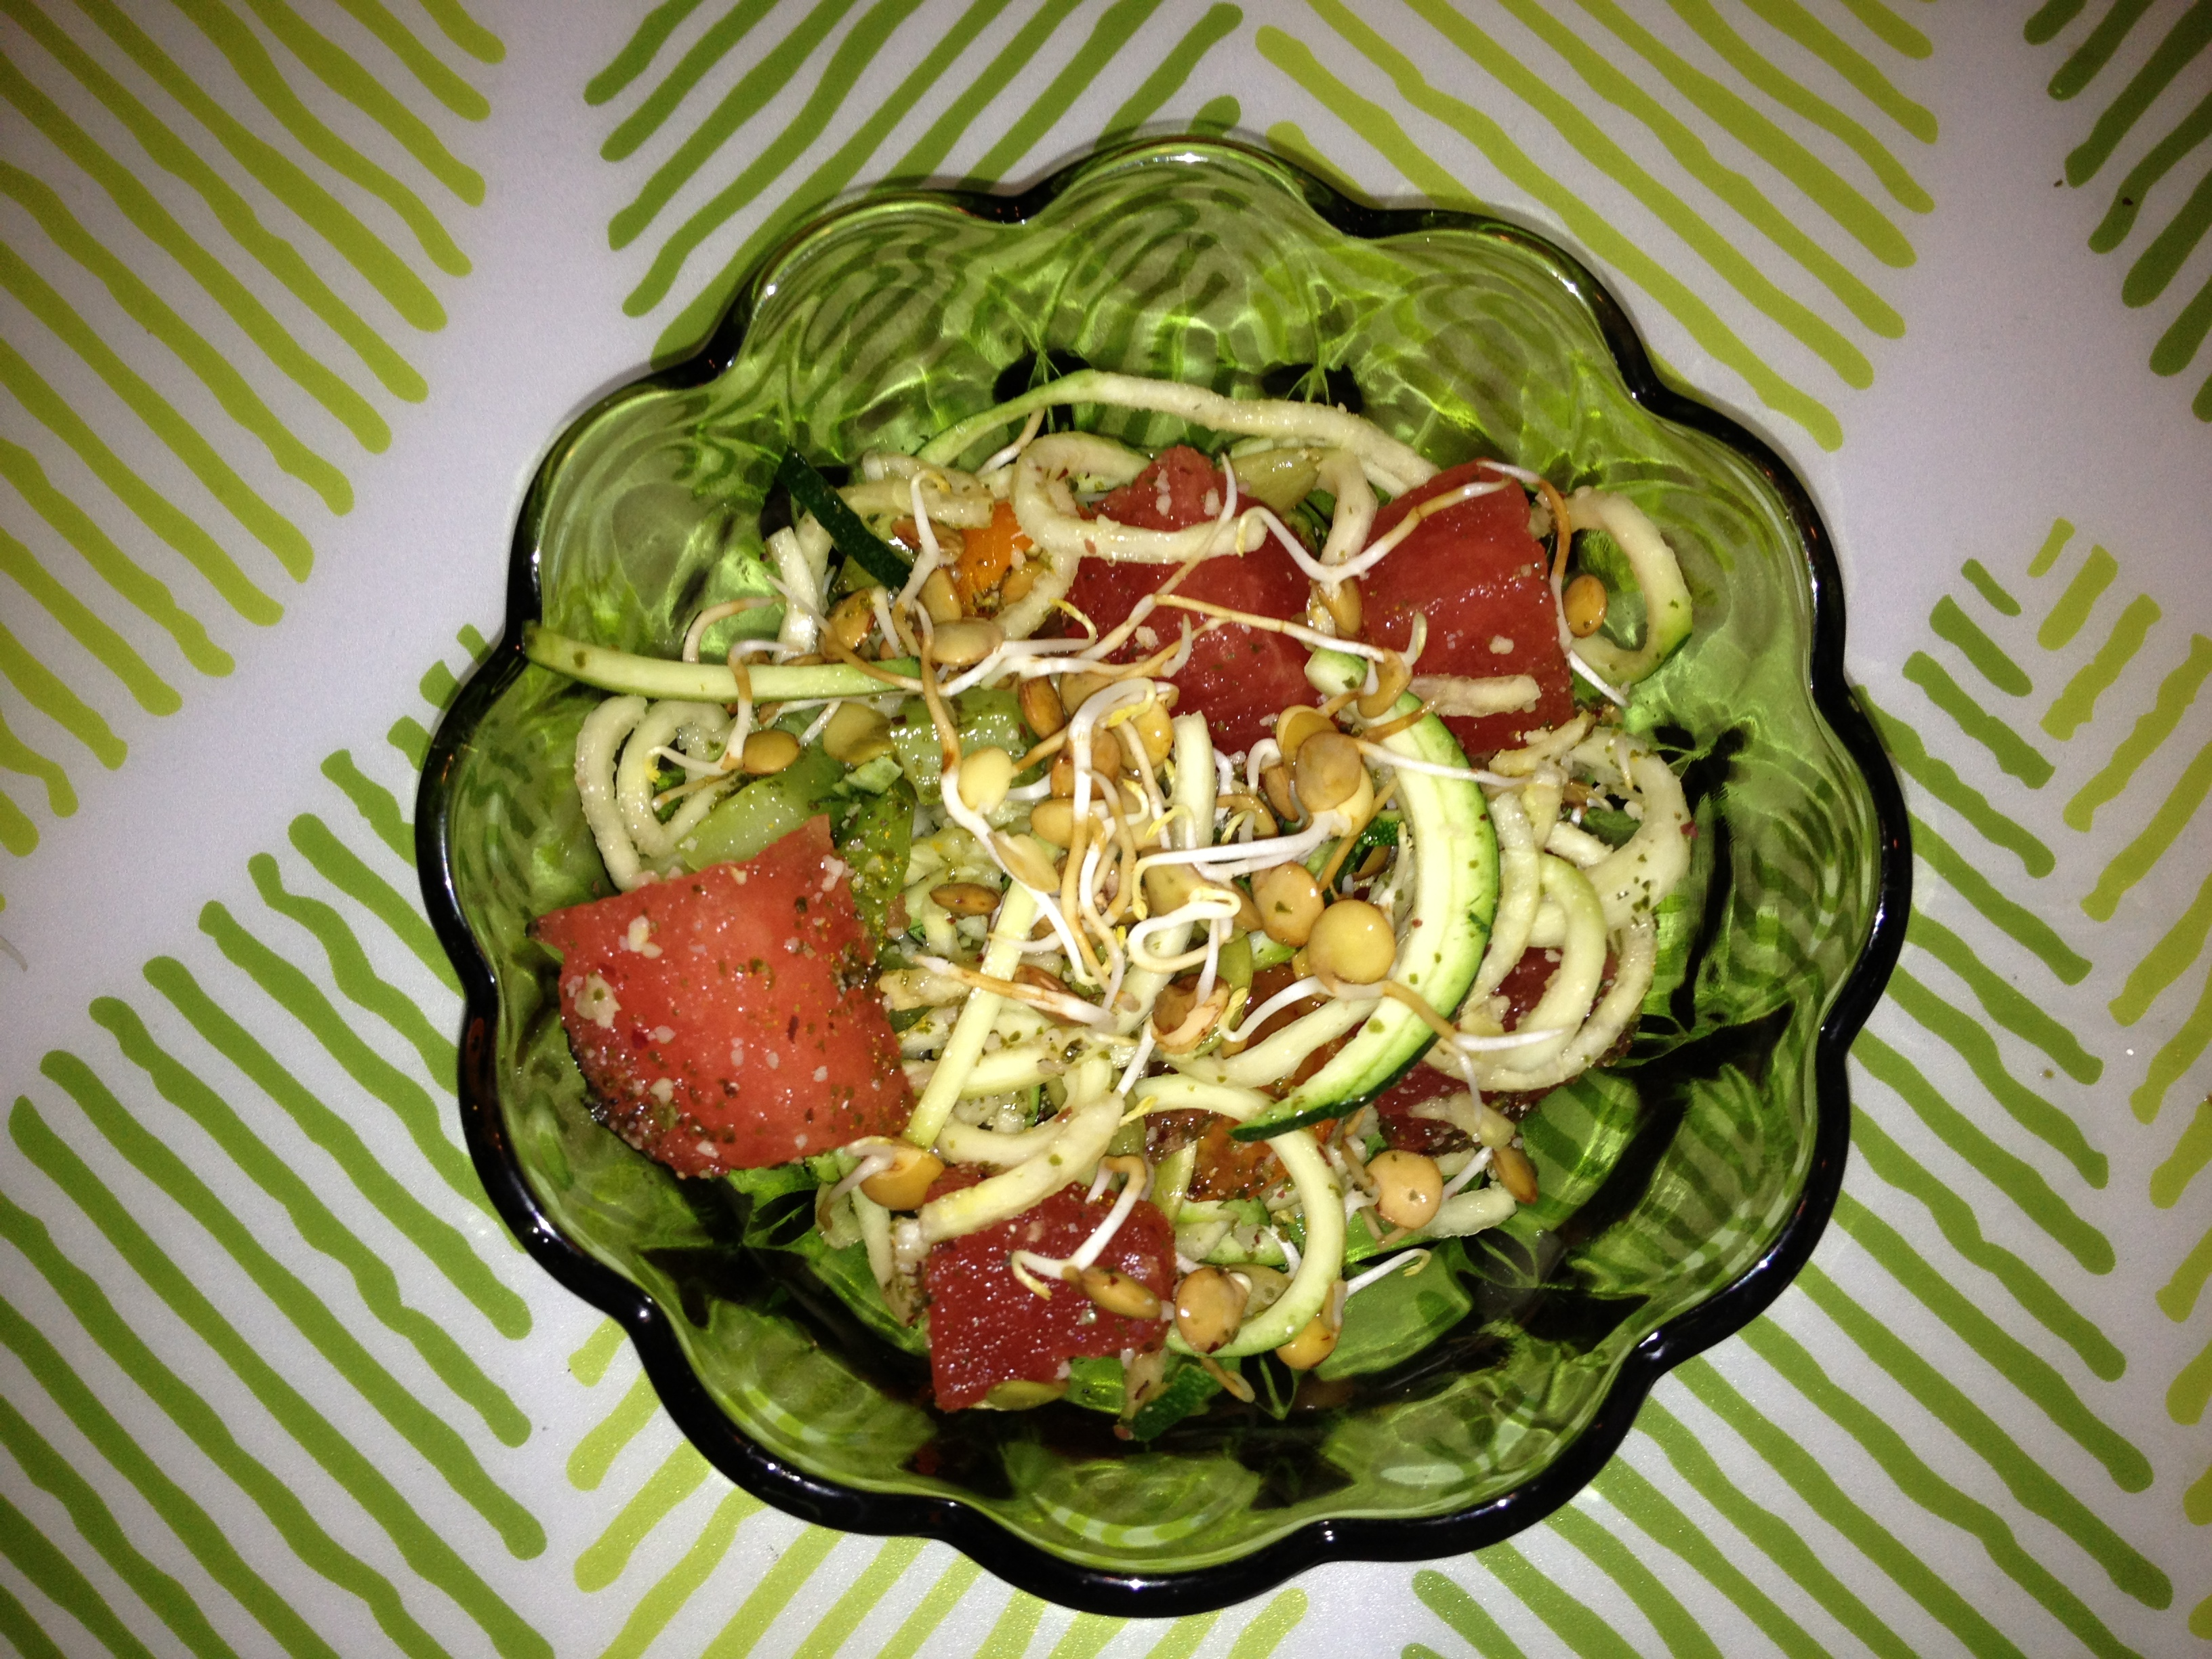 Zucchini Pasta and Watermelon Salad